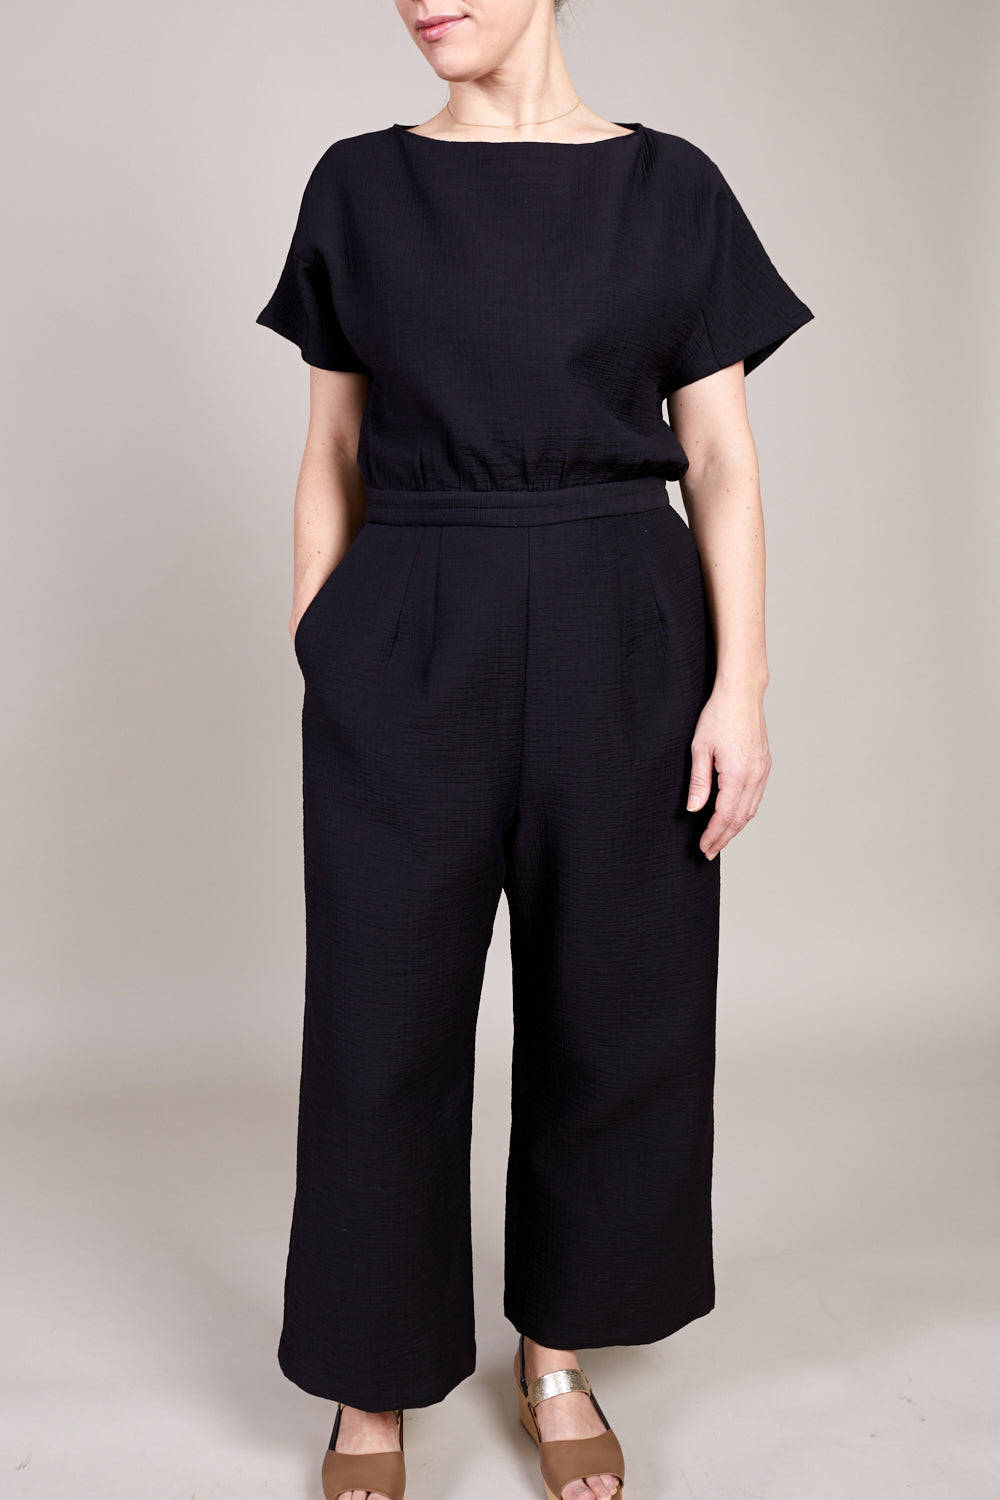 Benedict Jumpsuit in Black